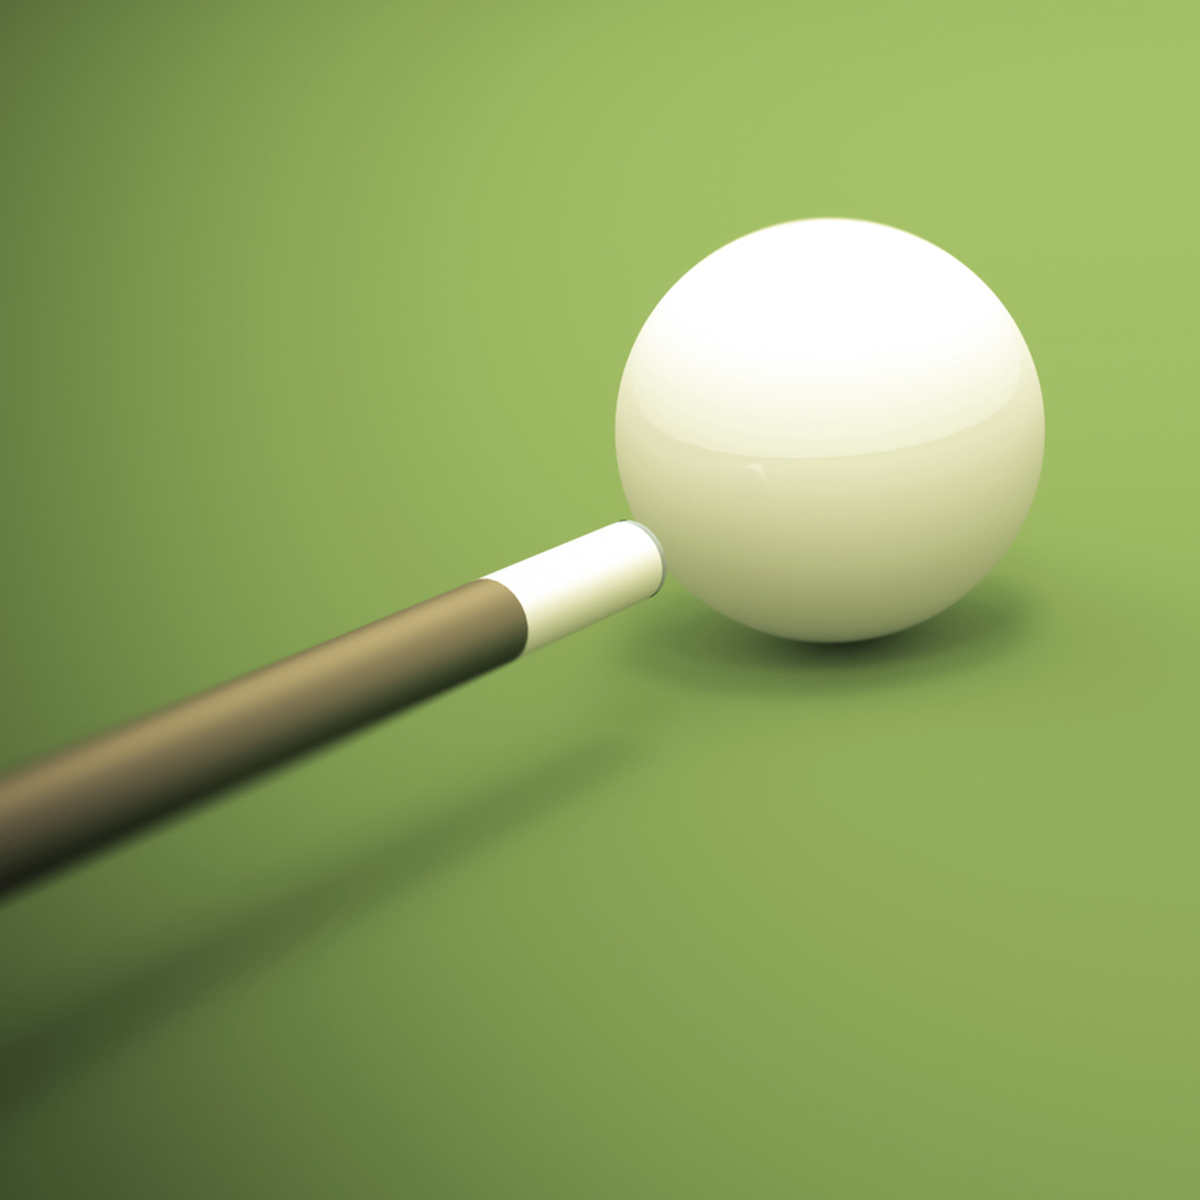 BAR BILLIARDS: Democrats are champs